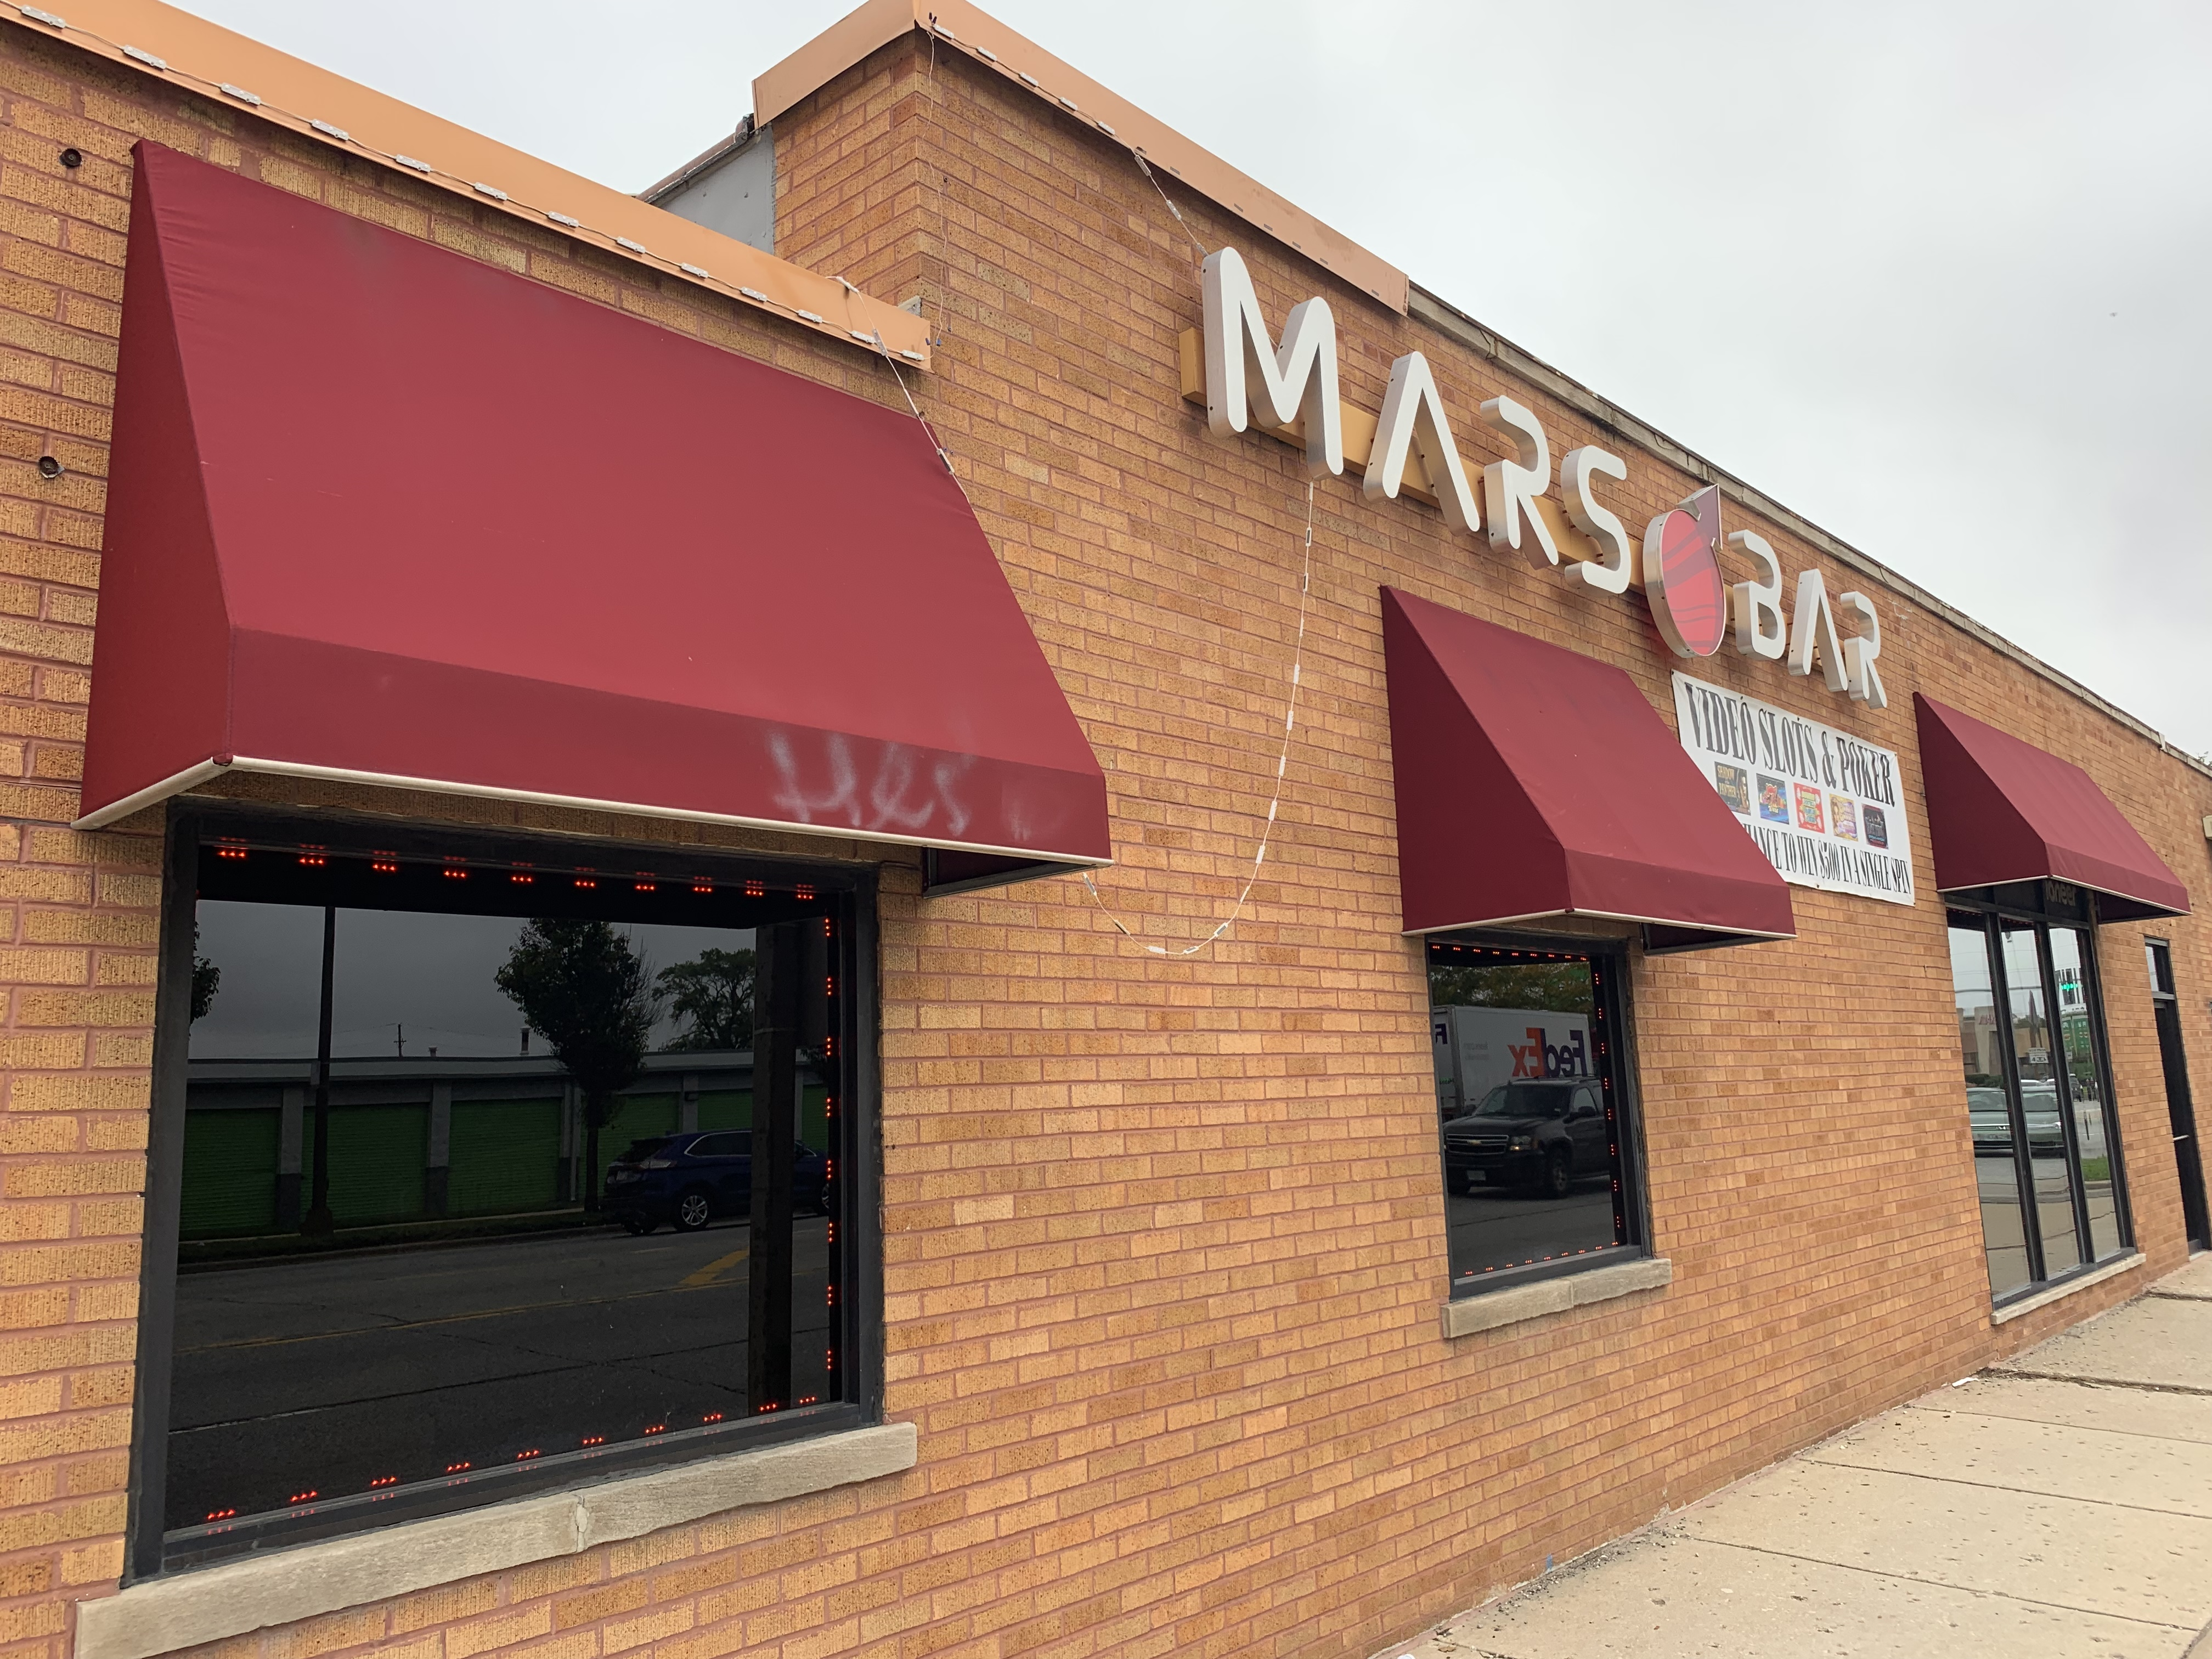 Mars Bar in Summit, run by Mariano Martinez and a relative, has been the subject of questions by federal agents.